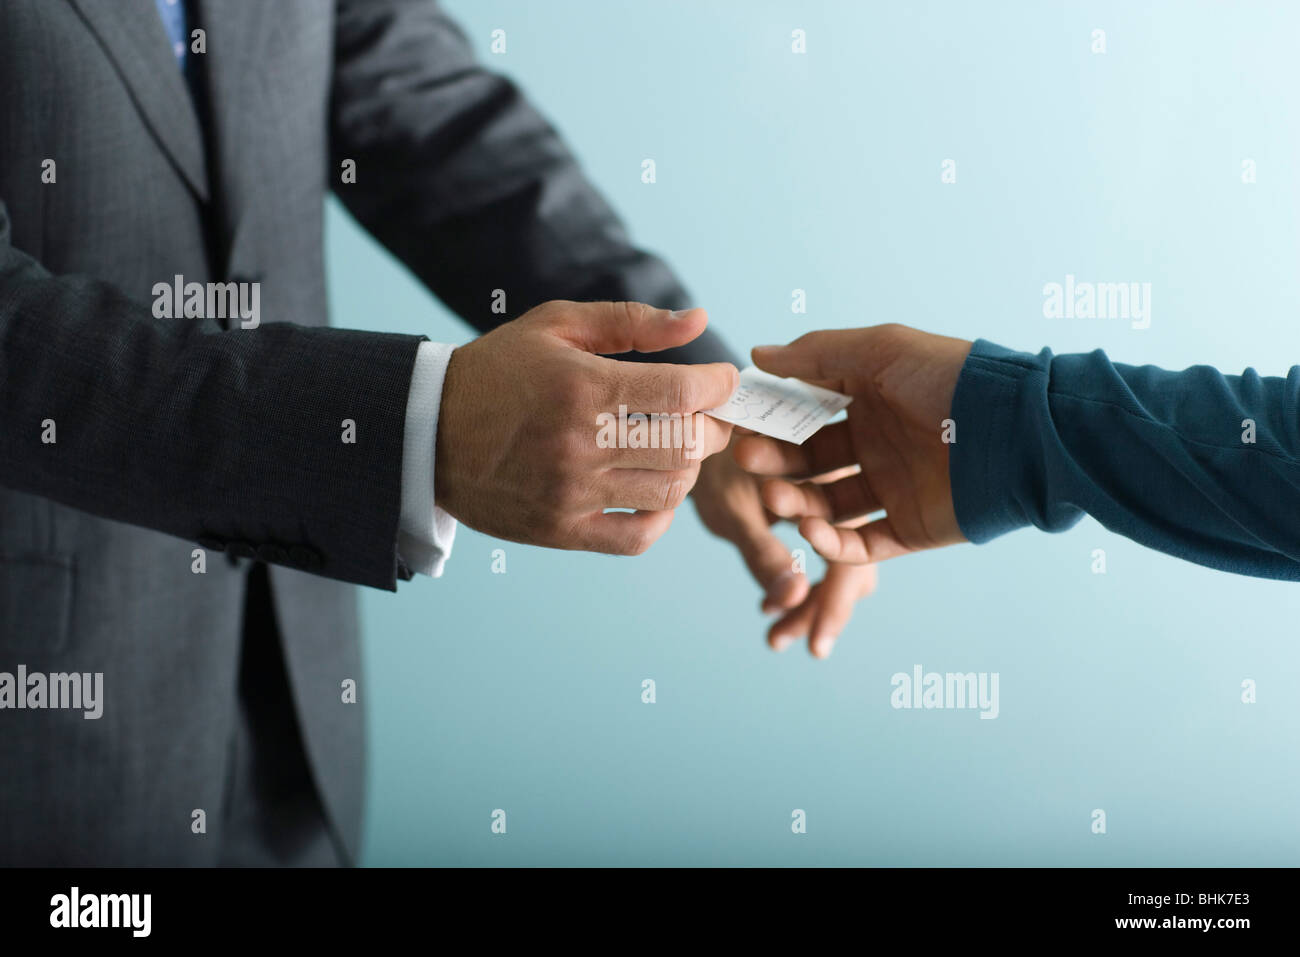 Handing out business cards stock photos handing out business cards businessman handing business card to client stock image colourmoves